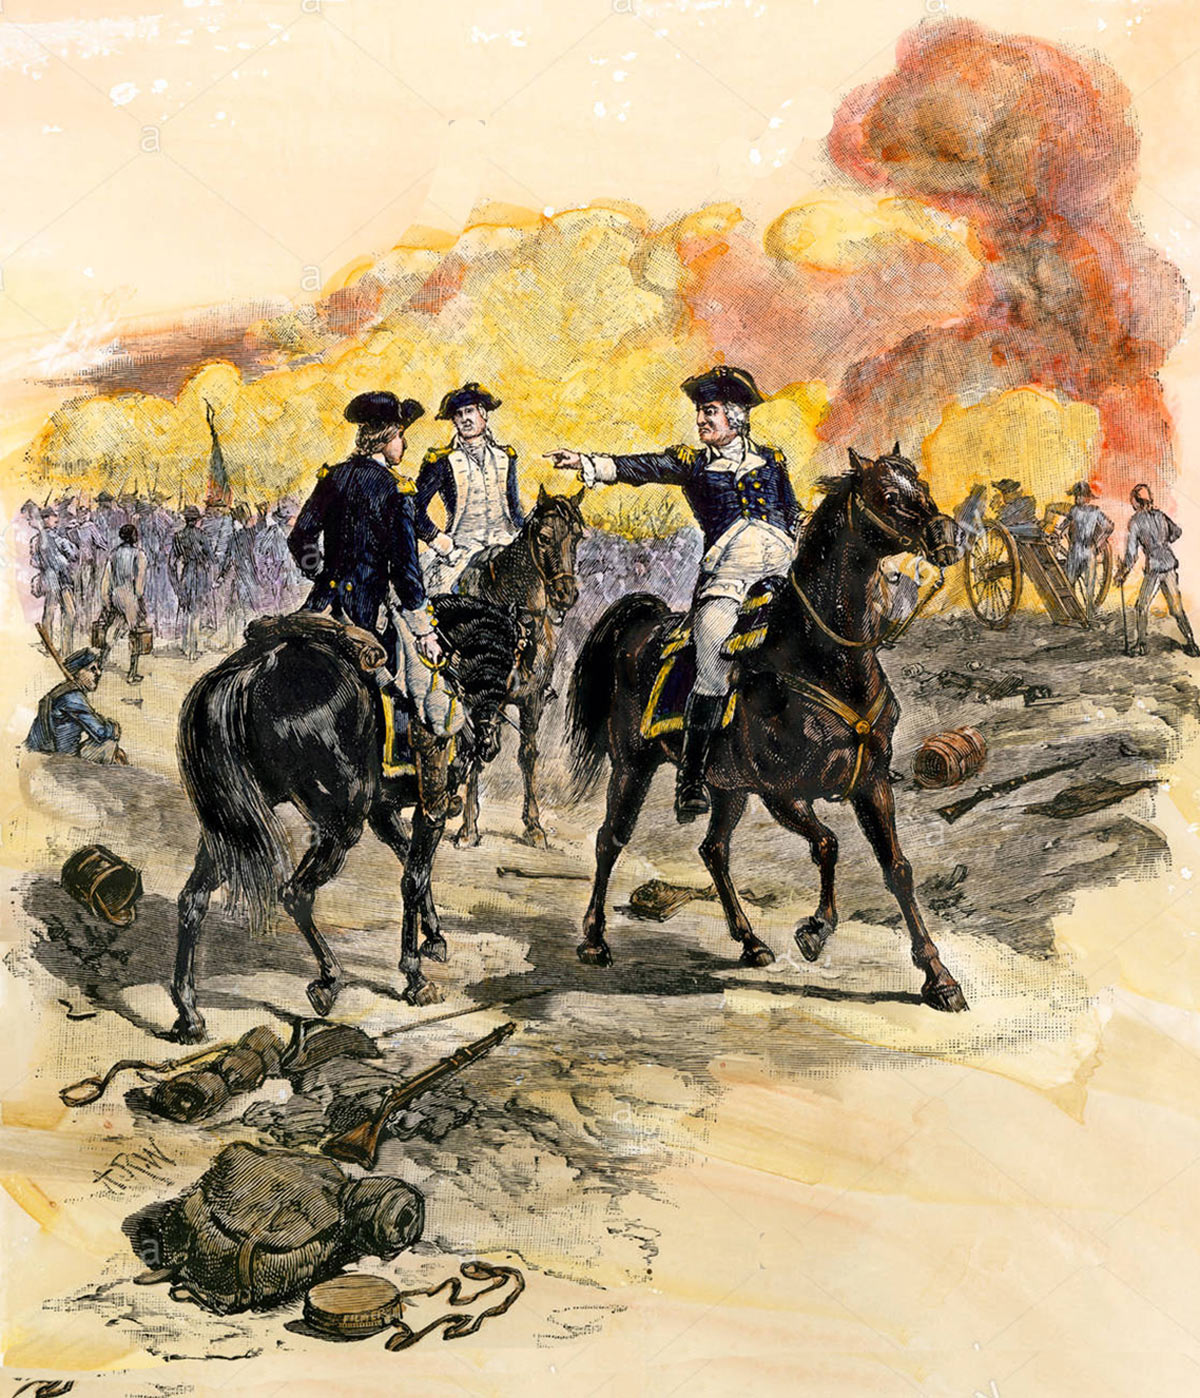 Washington confronting Lee: Battle of Monmouth on 28th June 1778 in the American Revolutionary War